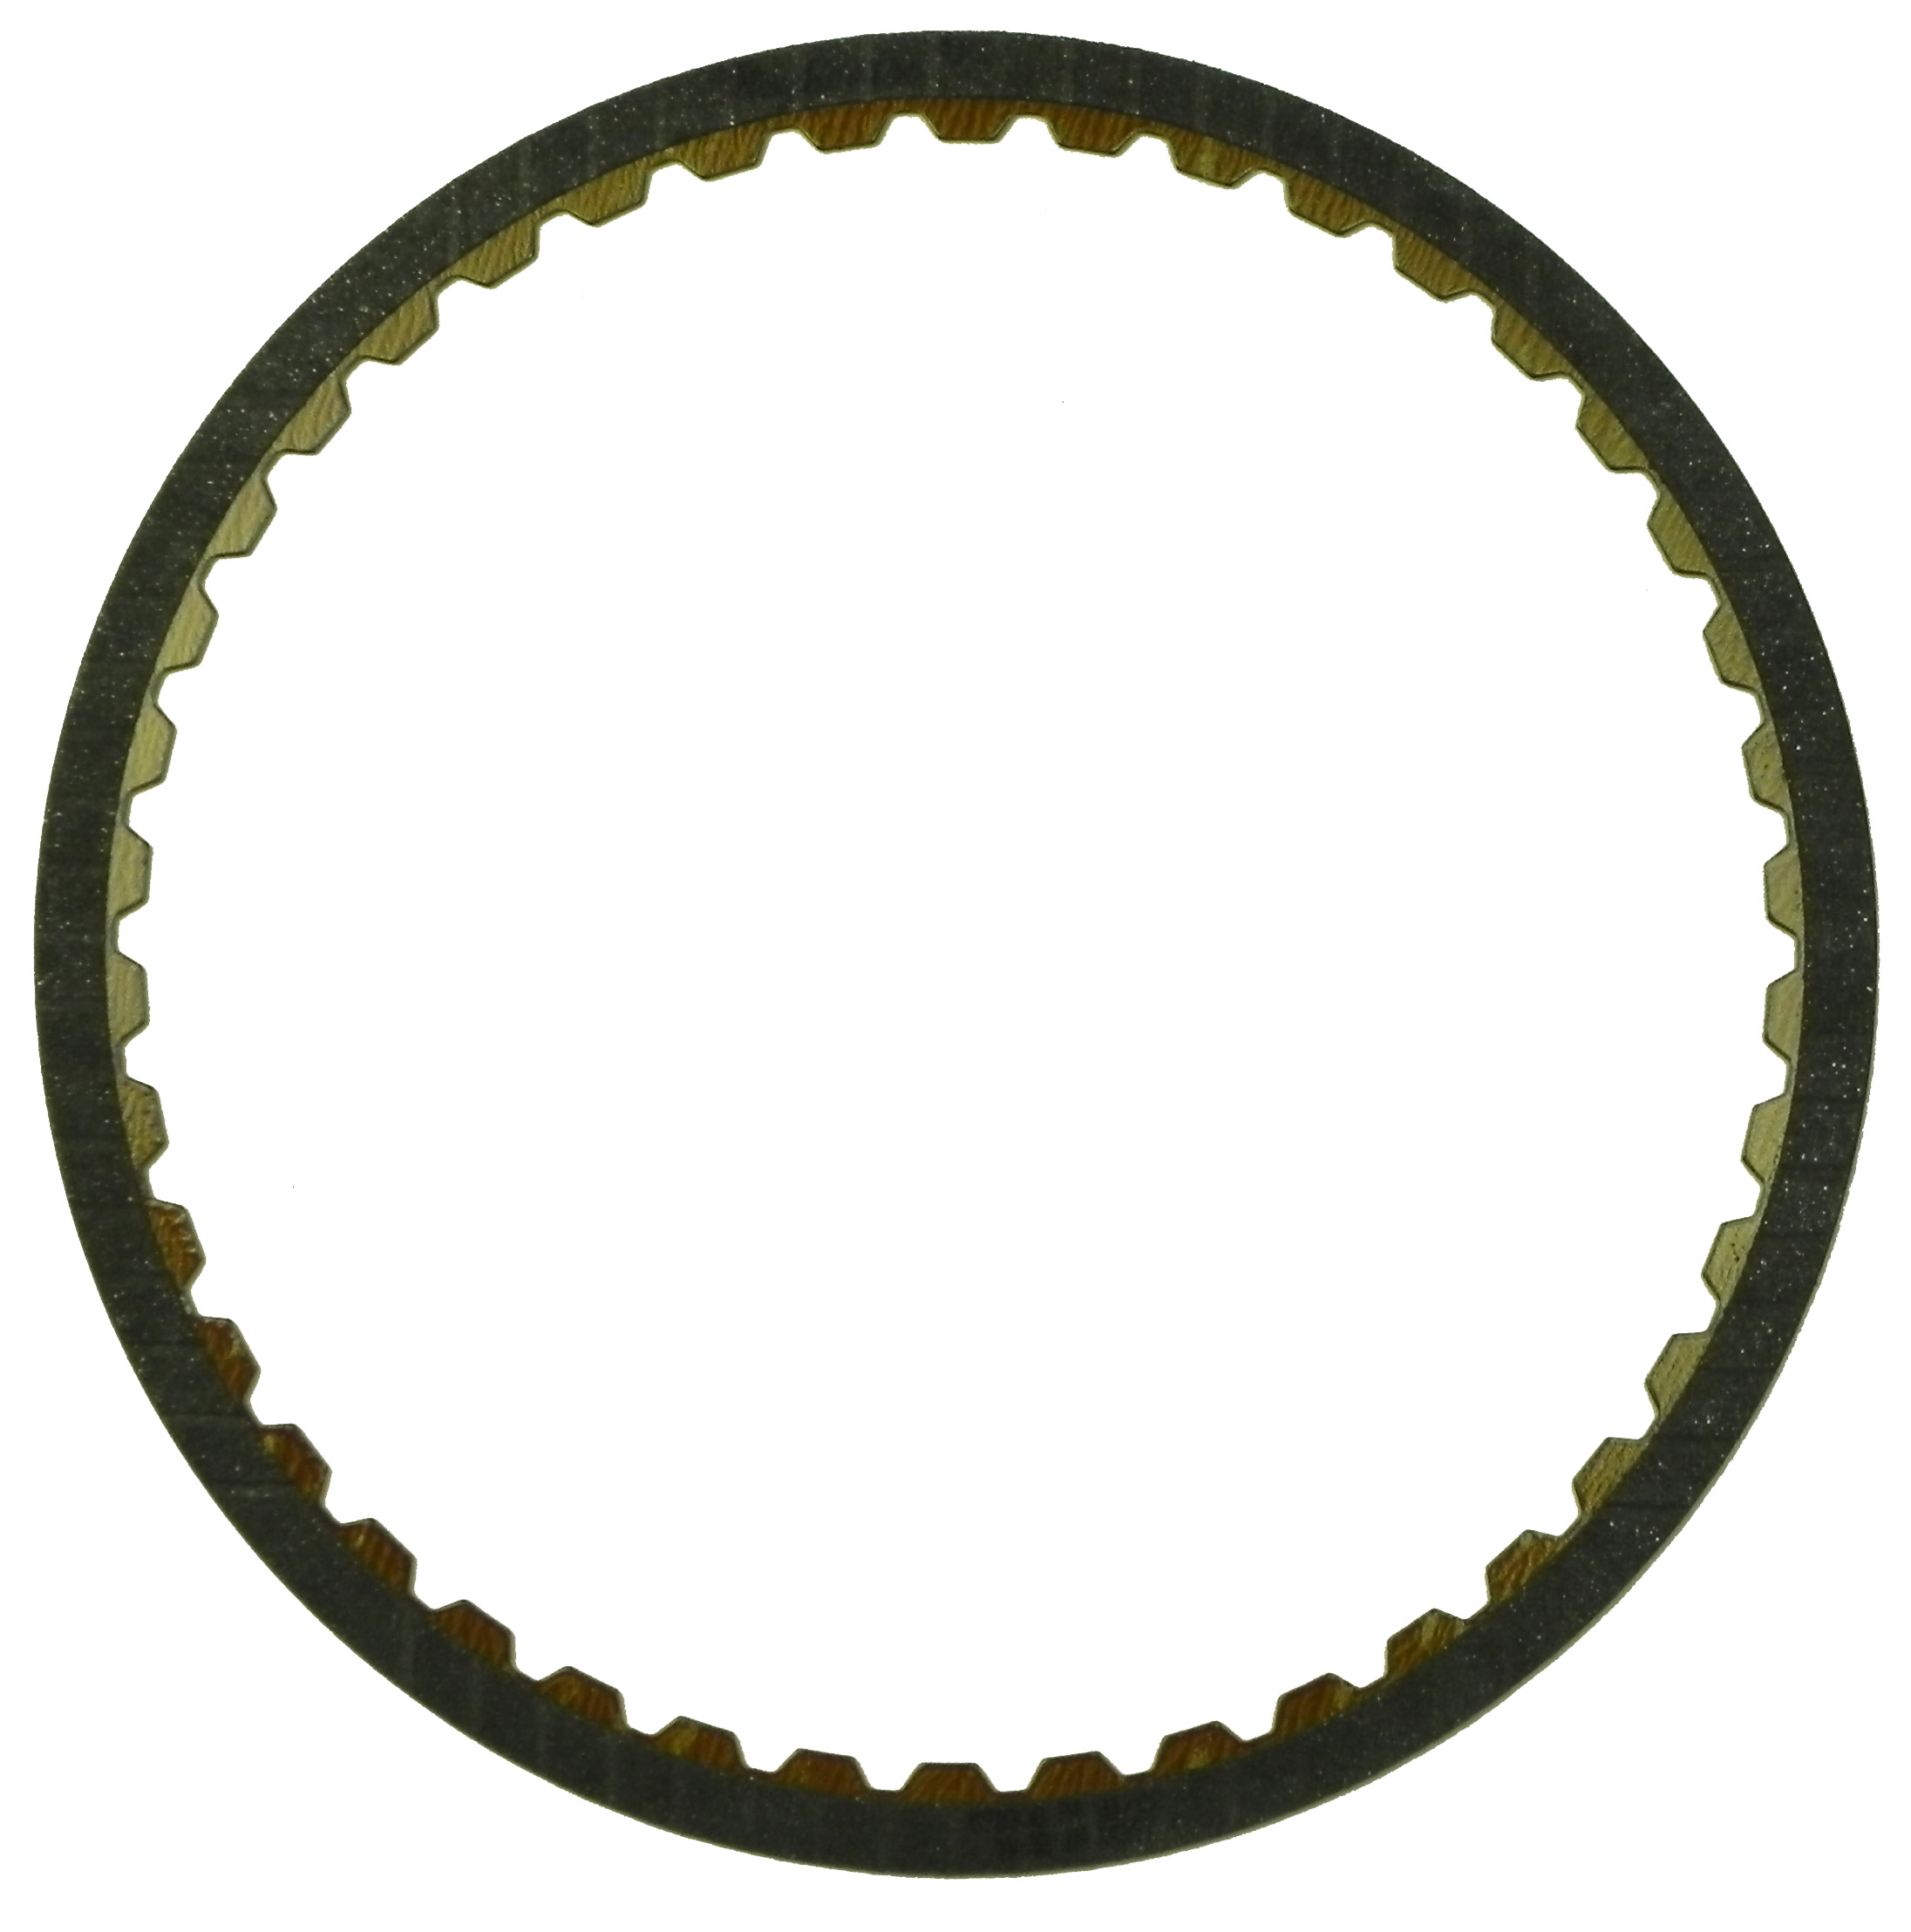 R572300 | 1999-ON Friction Clutch Plate High Energy Low, Reverse High Energy